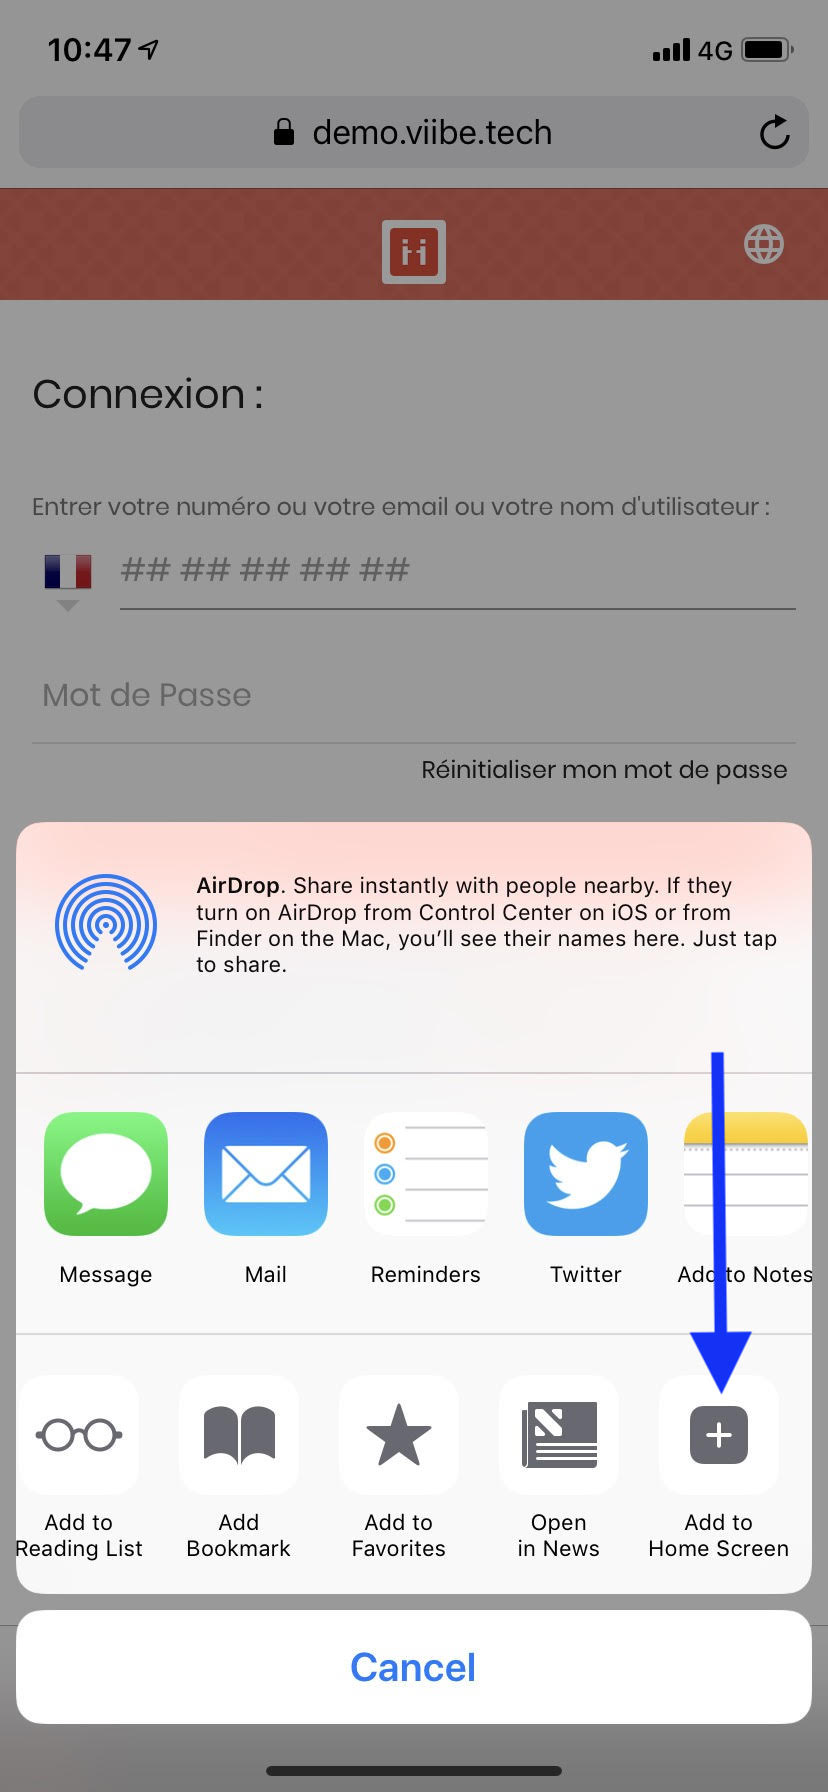 Create a shortcut to your ViiBE homepage from an iOS platform